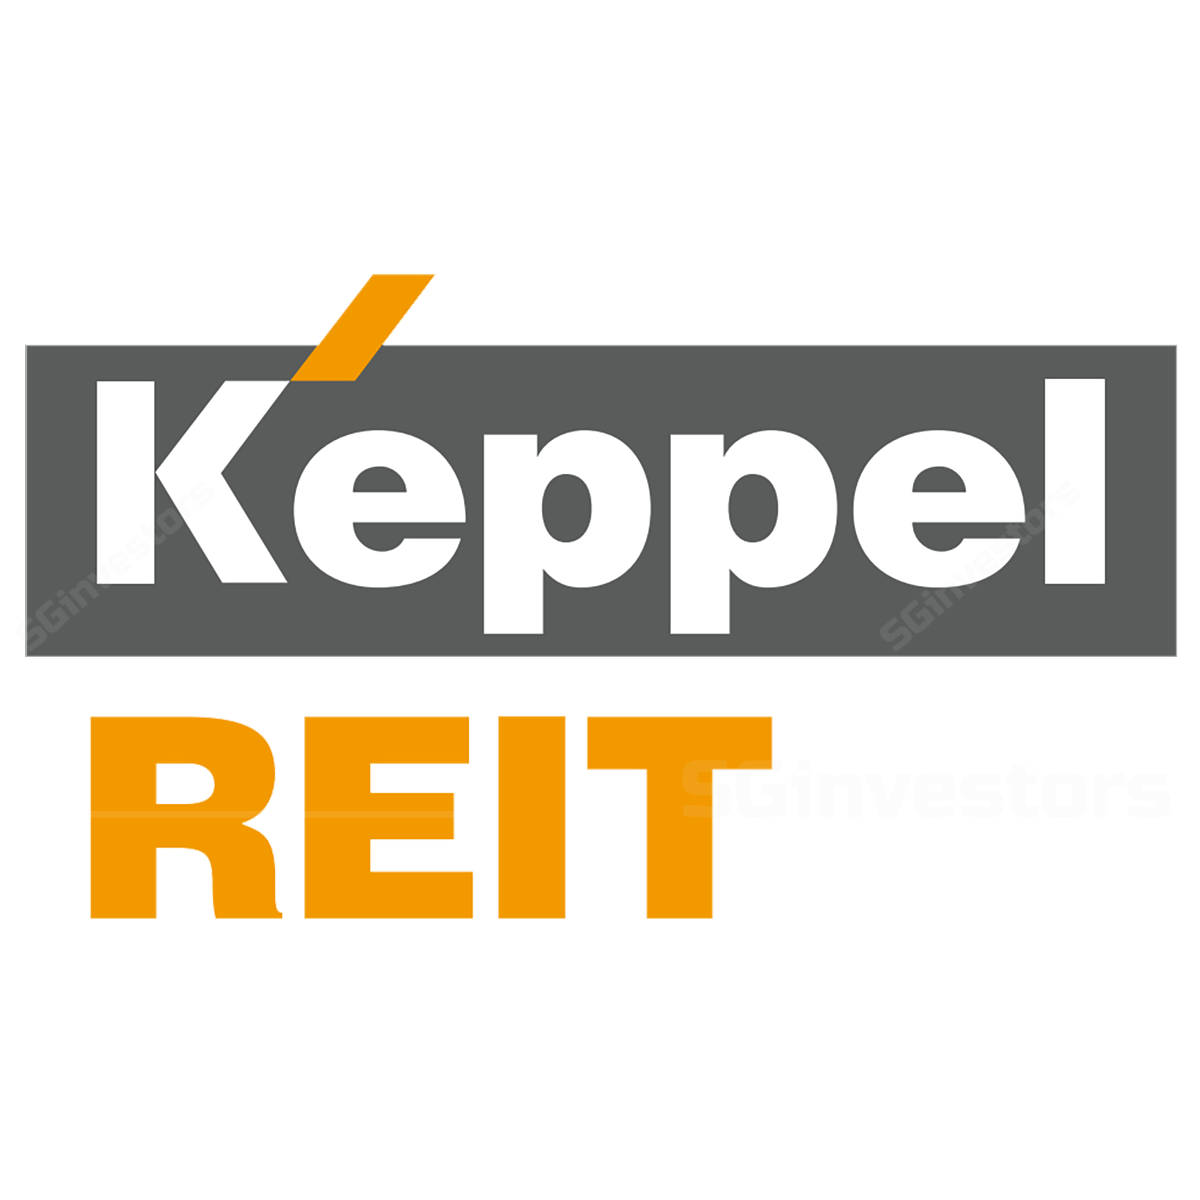 Keppel REIT - RHB Invest 2017-04-20: 1Q17 Results Flash Note